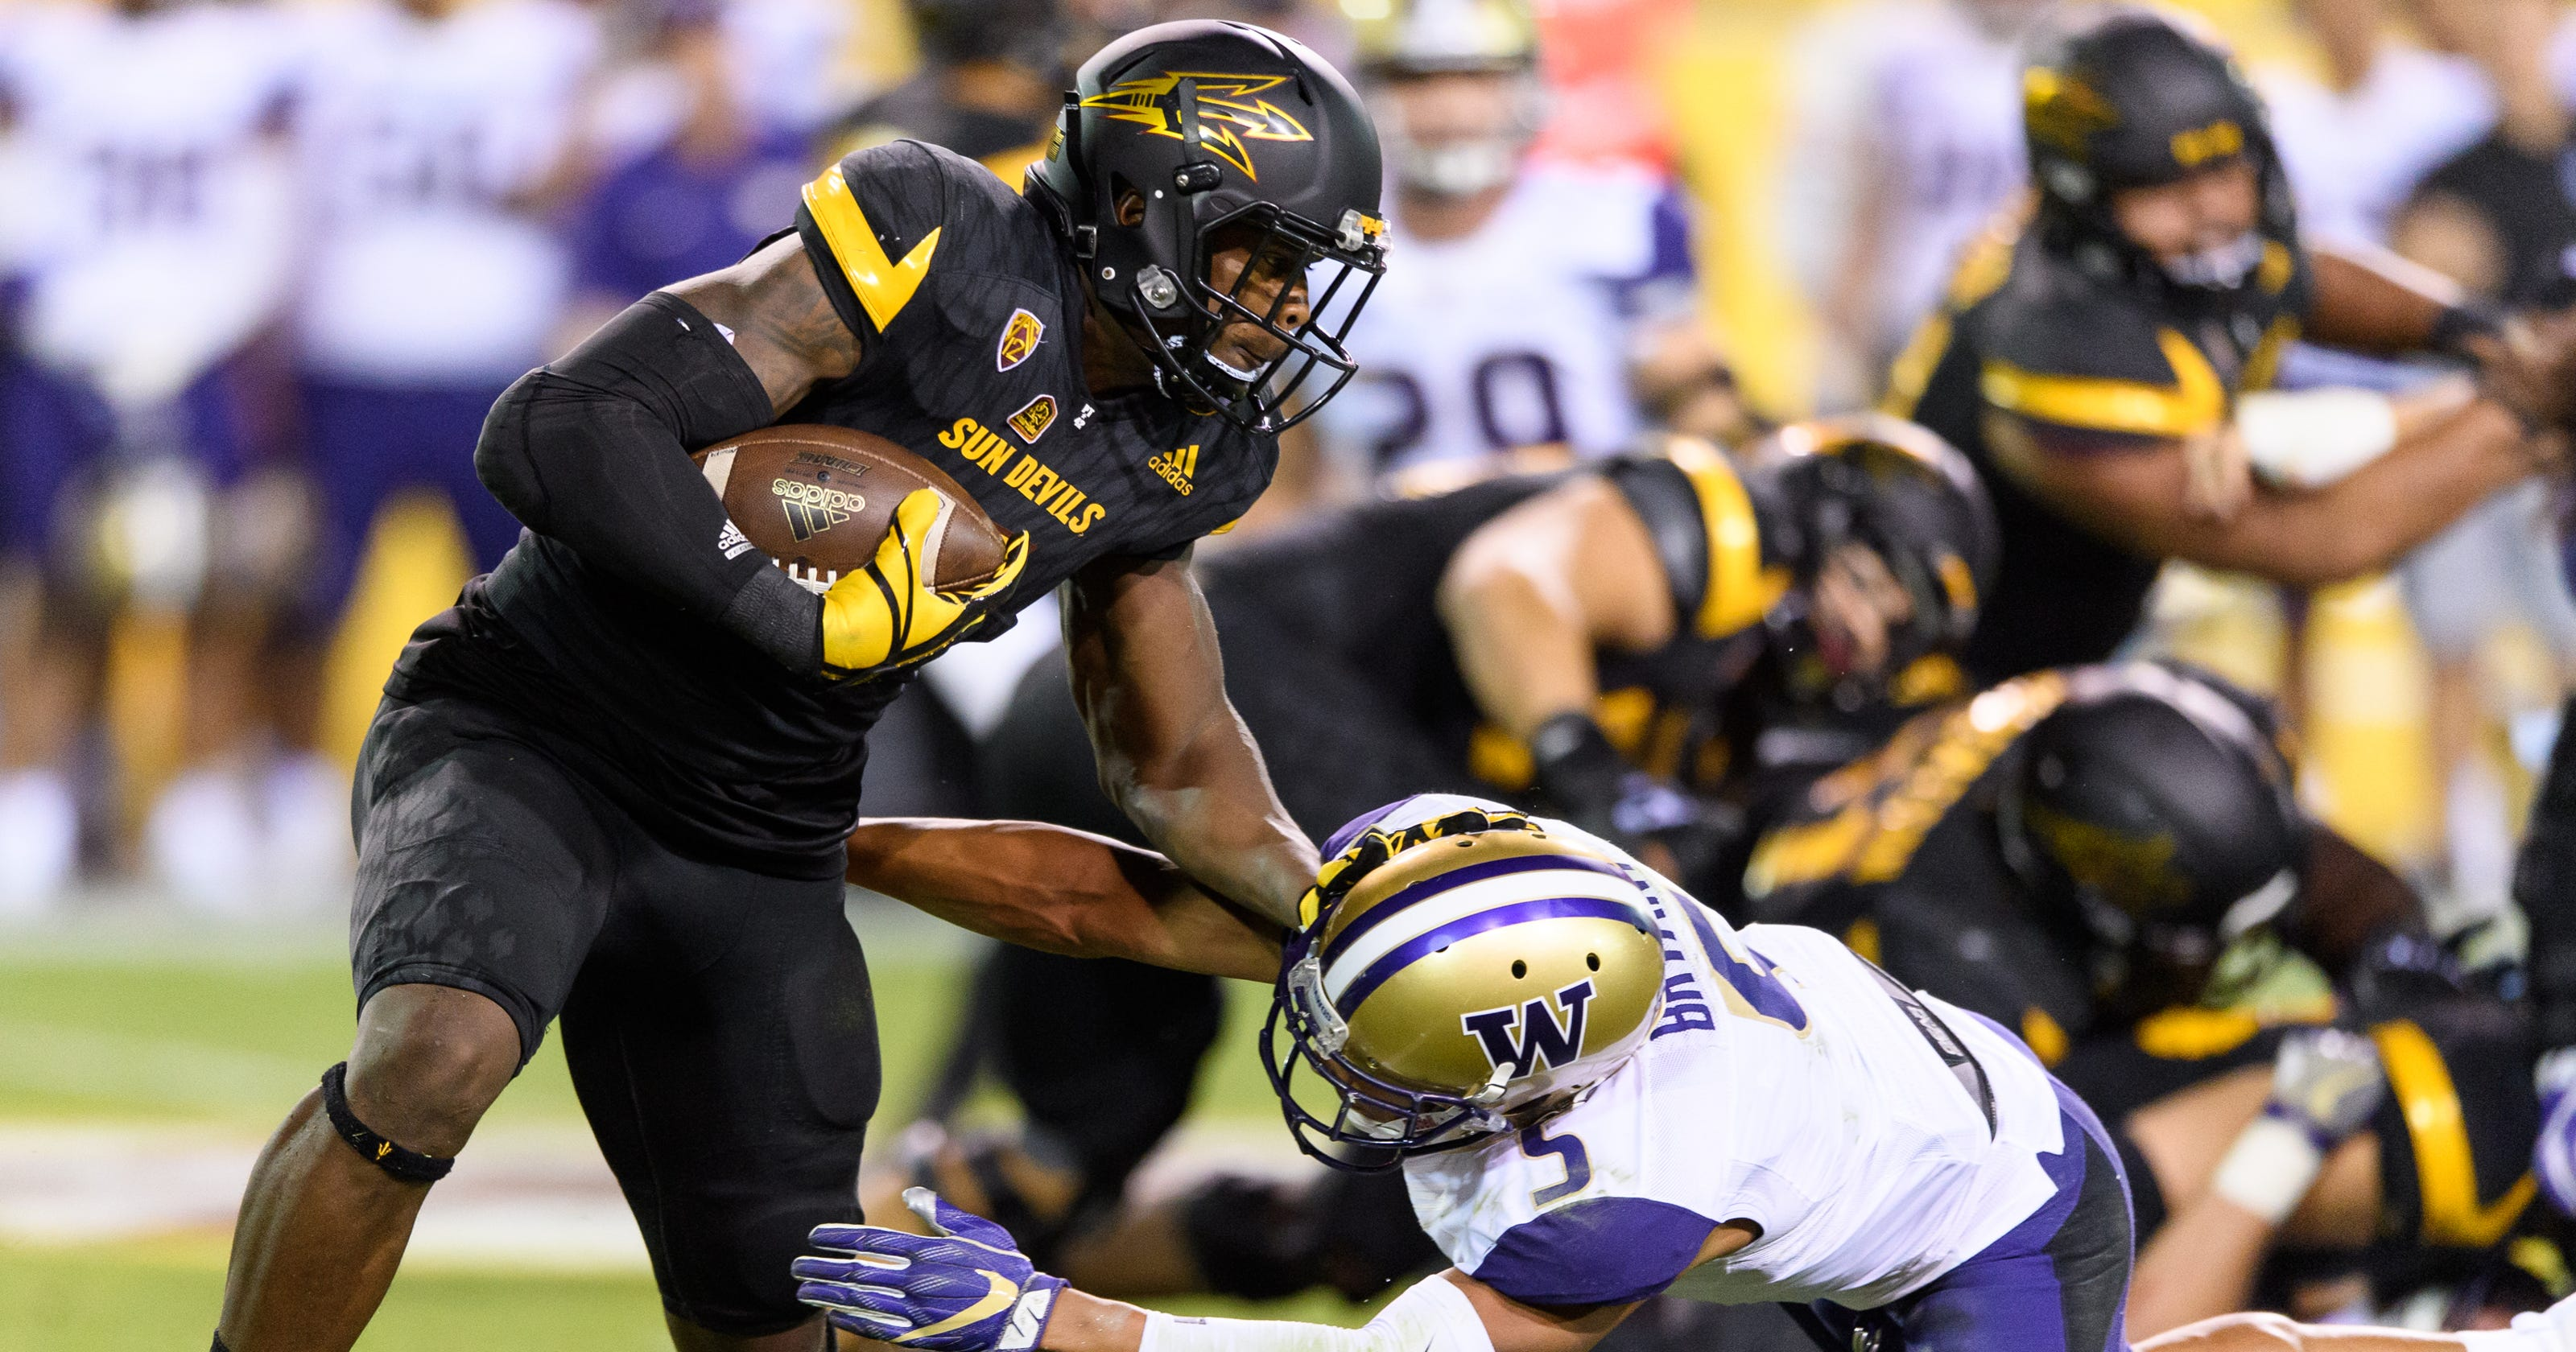 Possession-oriented Arizona State offense putting time on